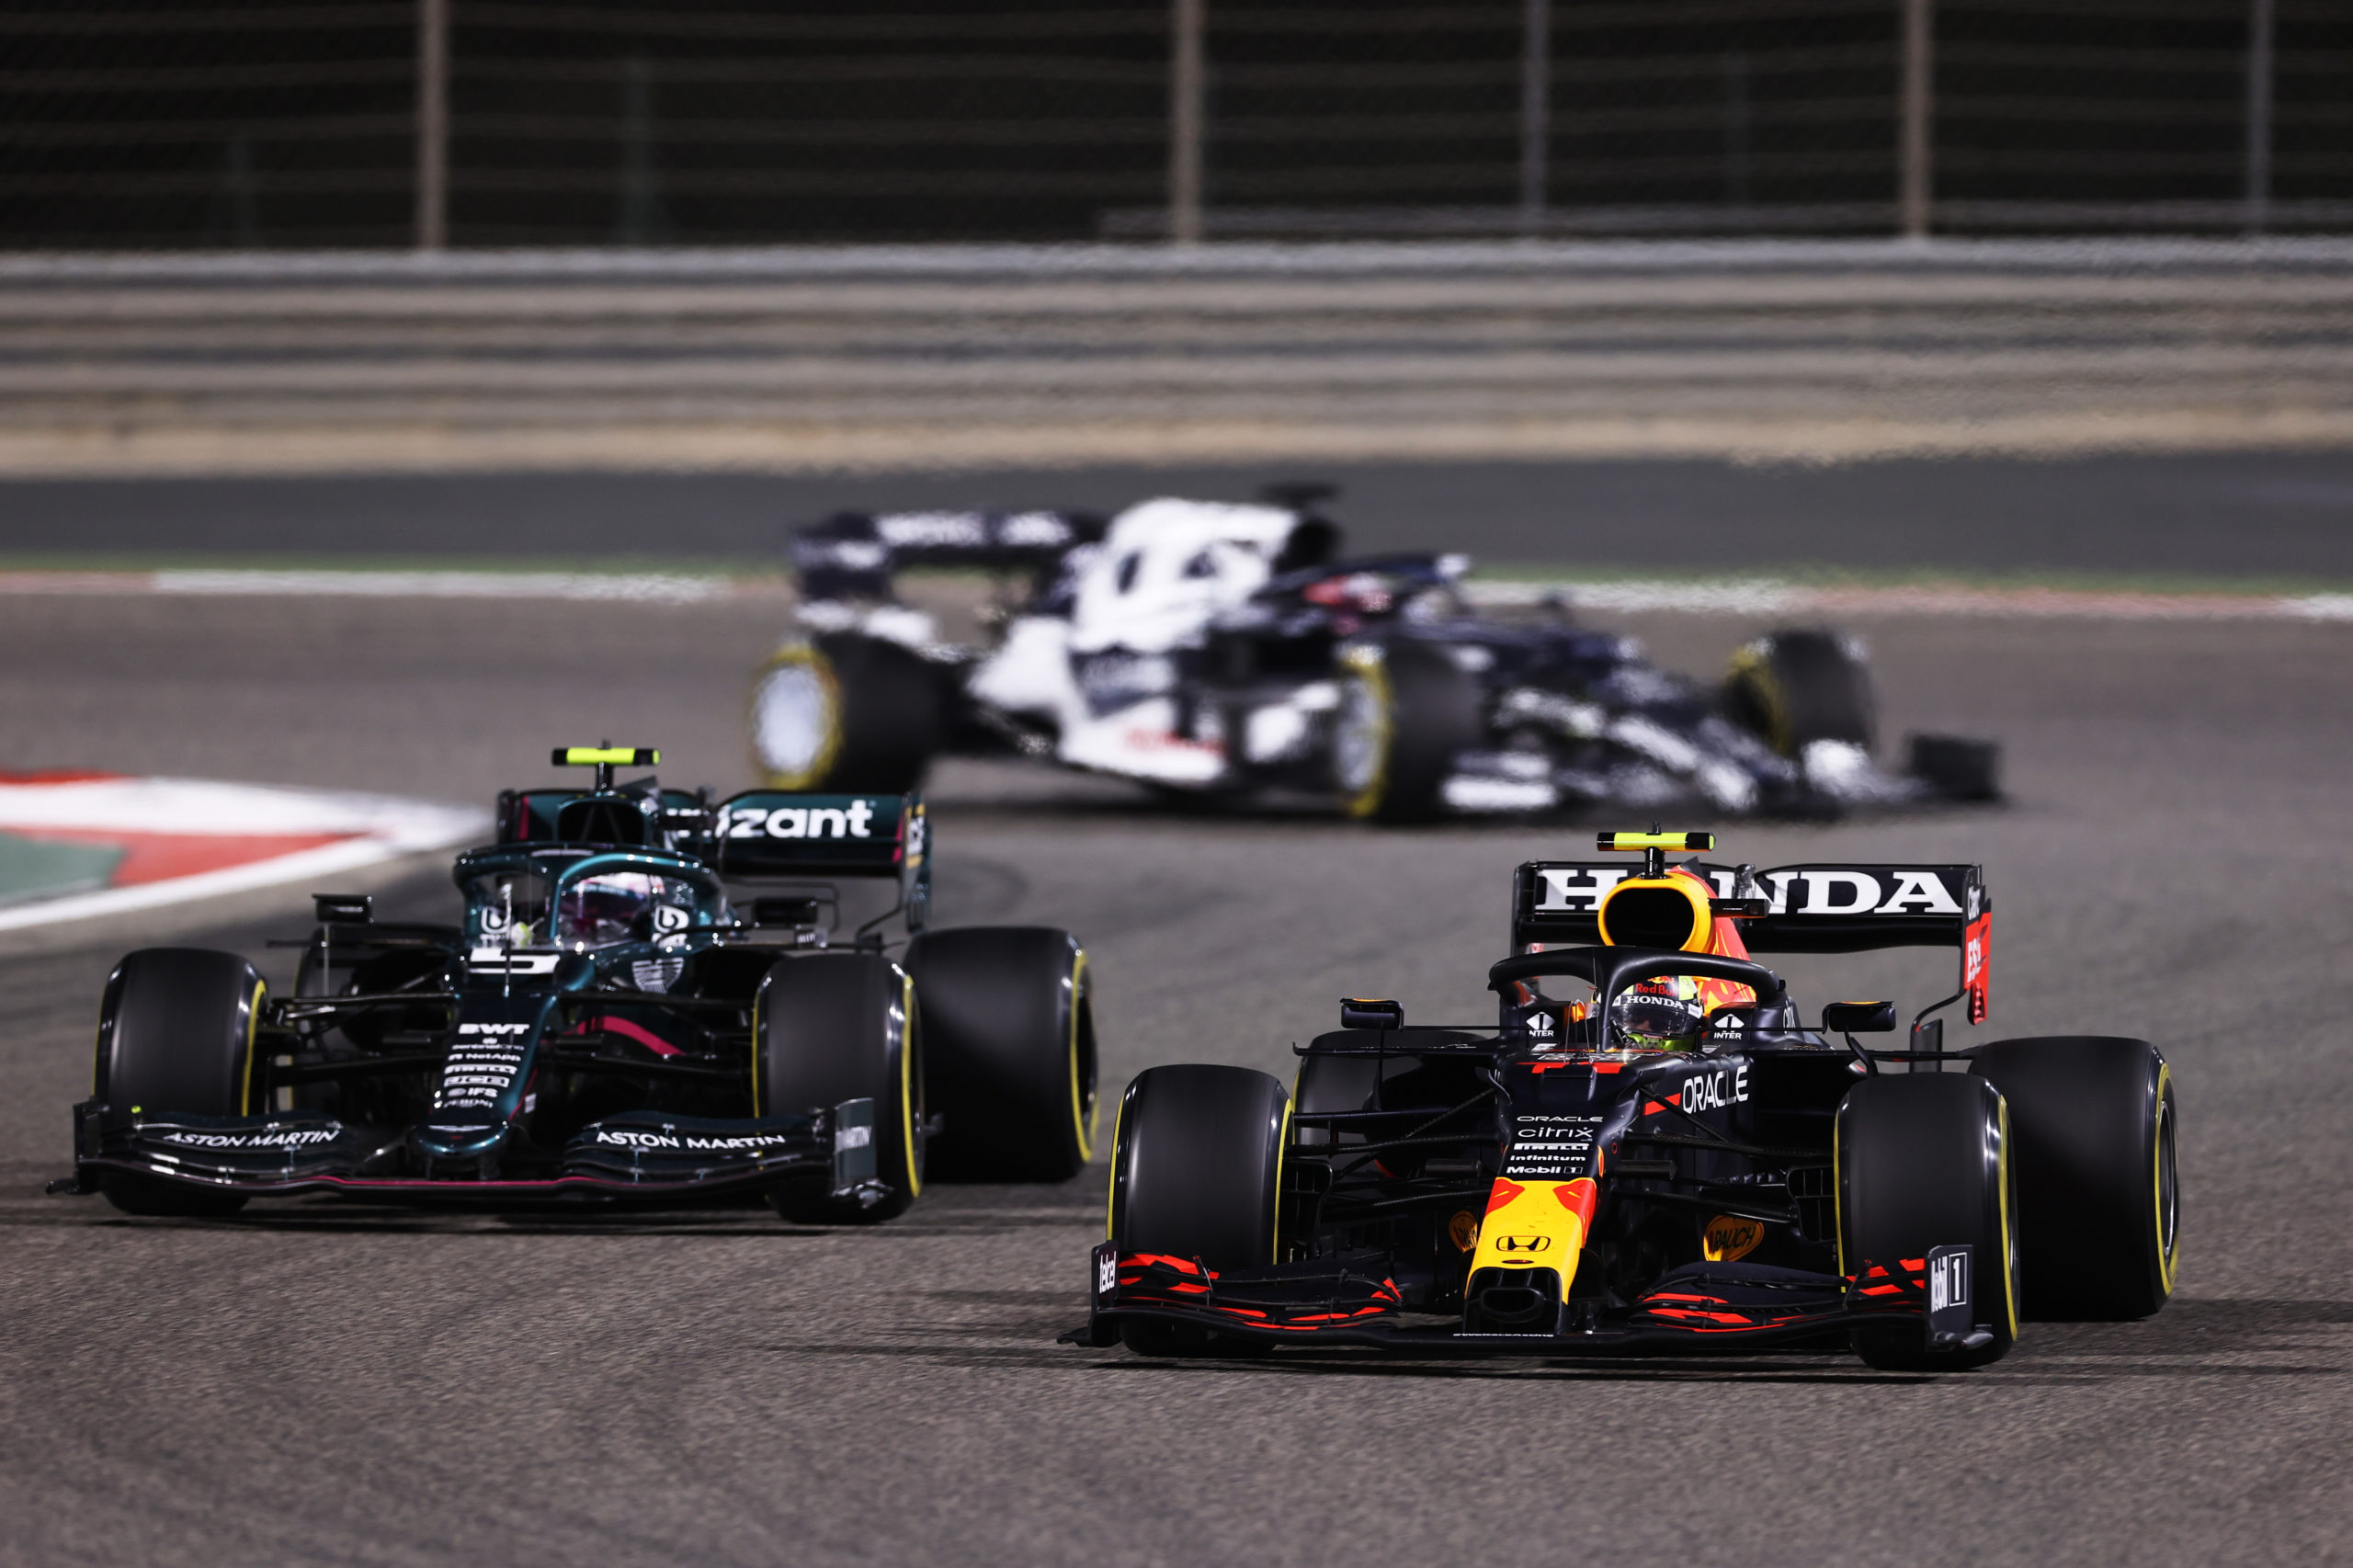 BAHRAIN, BAHRAIN - MARCH 28: Sergio Perez of Mexico driving the (11) Red Bull Racing RB16B Honda and Sebastian Vettel of Germany driving the (5) Aston Martin AMR21 Mercedes compete for position on track during the F1 Grand Prix of Bahrain at Bahrain International Circuit on March 28, 2021 in Bahrain, Bahrain. (Photo by Lars Baron/Getty Images) // Getty Images / Red Bull Content Pool  // SI202103280156 // Usage for editorial use only //